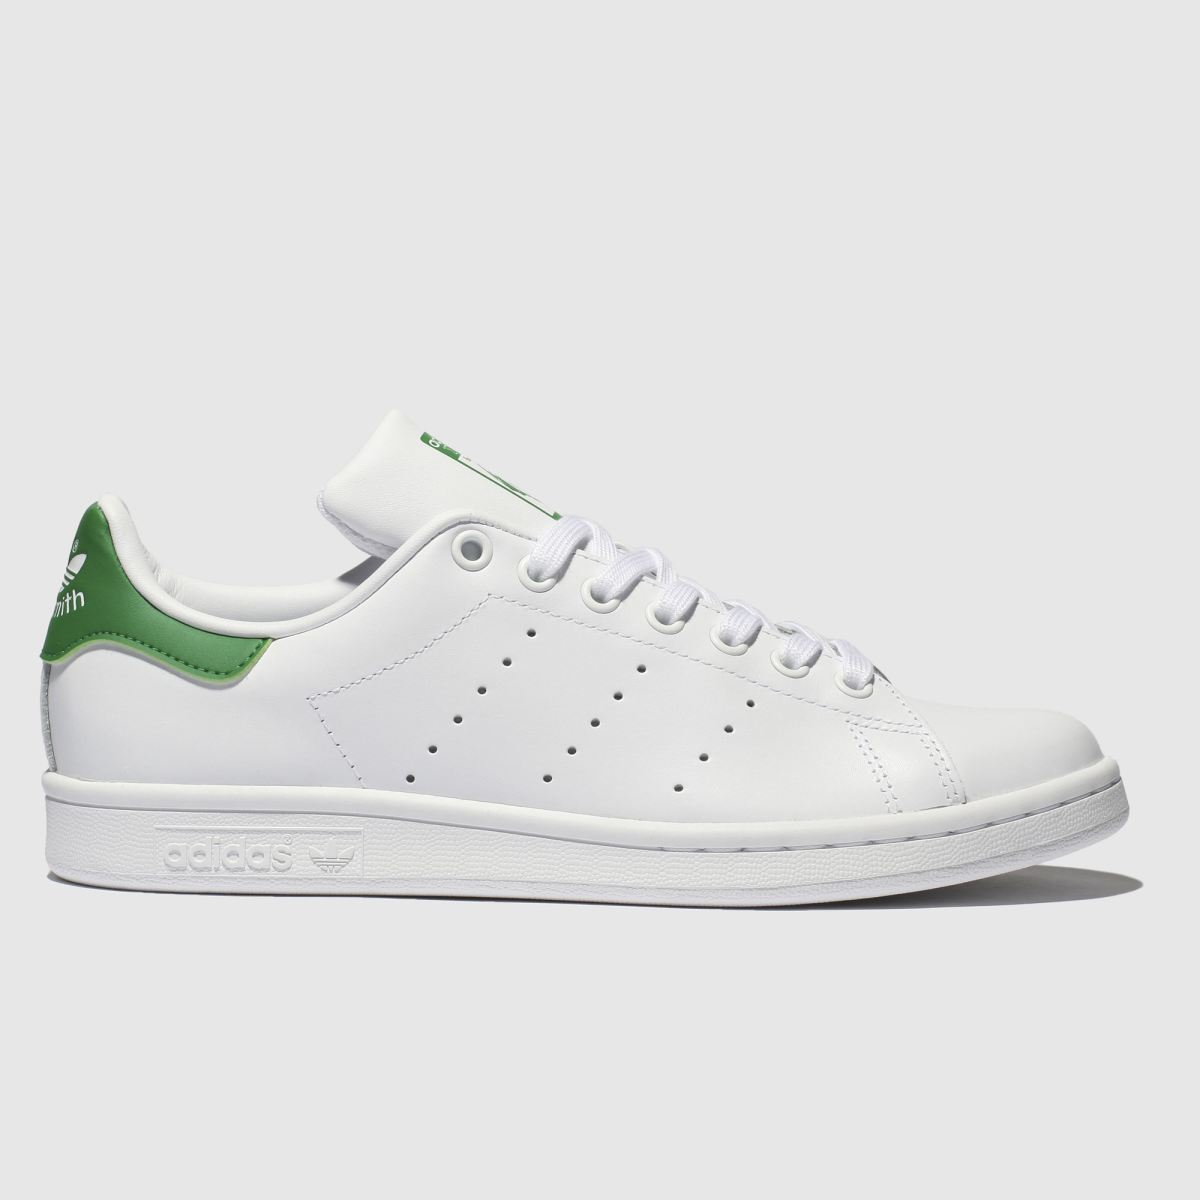 Stan Smith Green Adidas